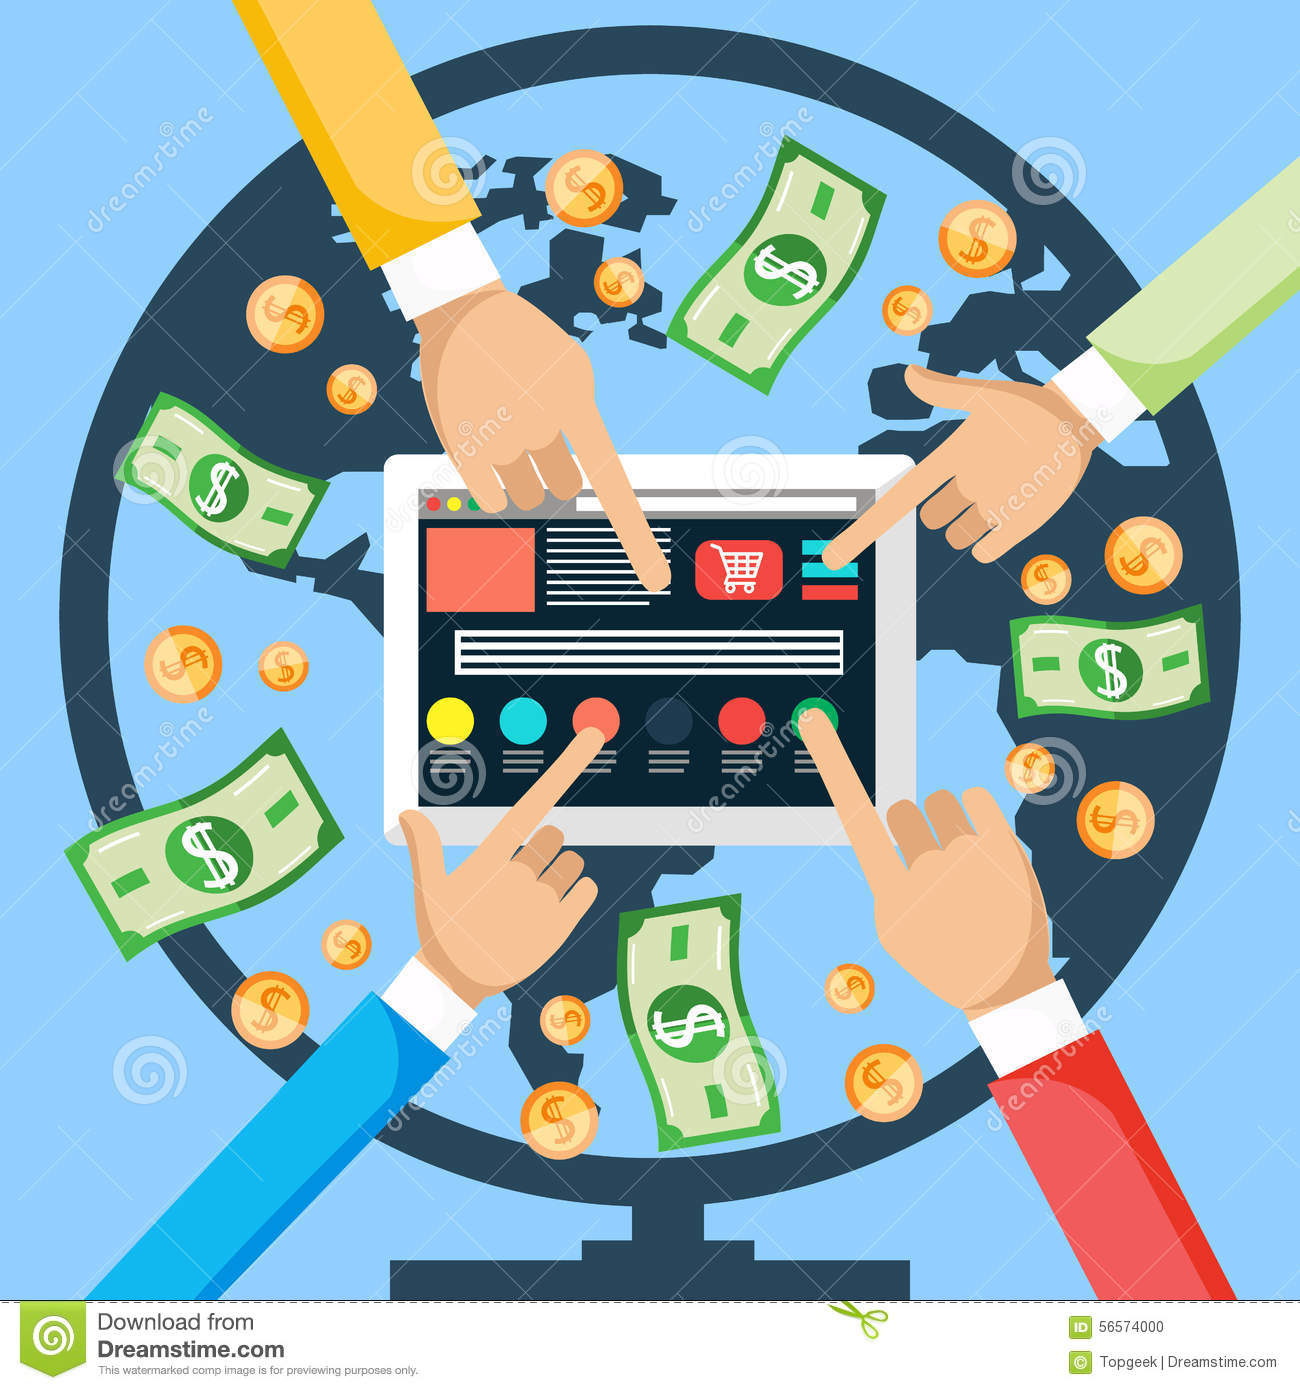 make money on internet It's the ultimate dream: make tons of money from your living room, working  not  only that, but out of all the legitimate job offers on the internet,.